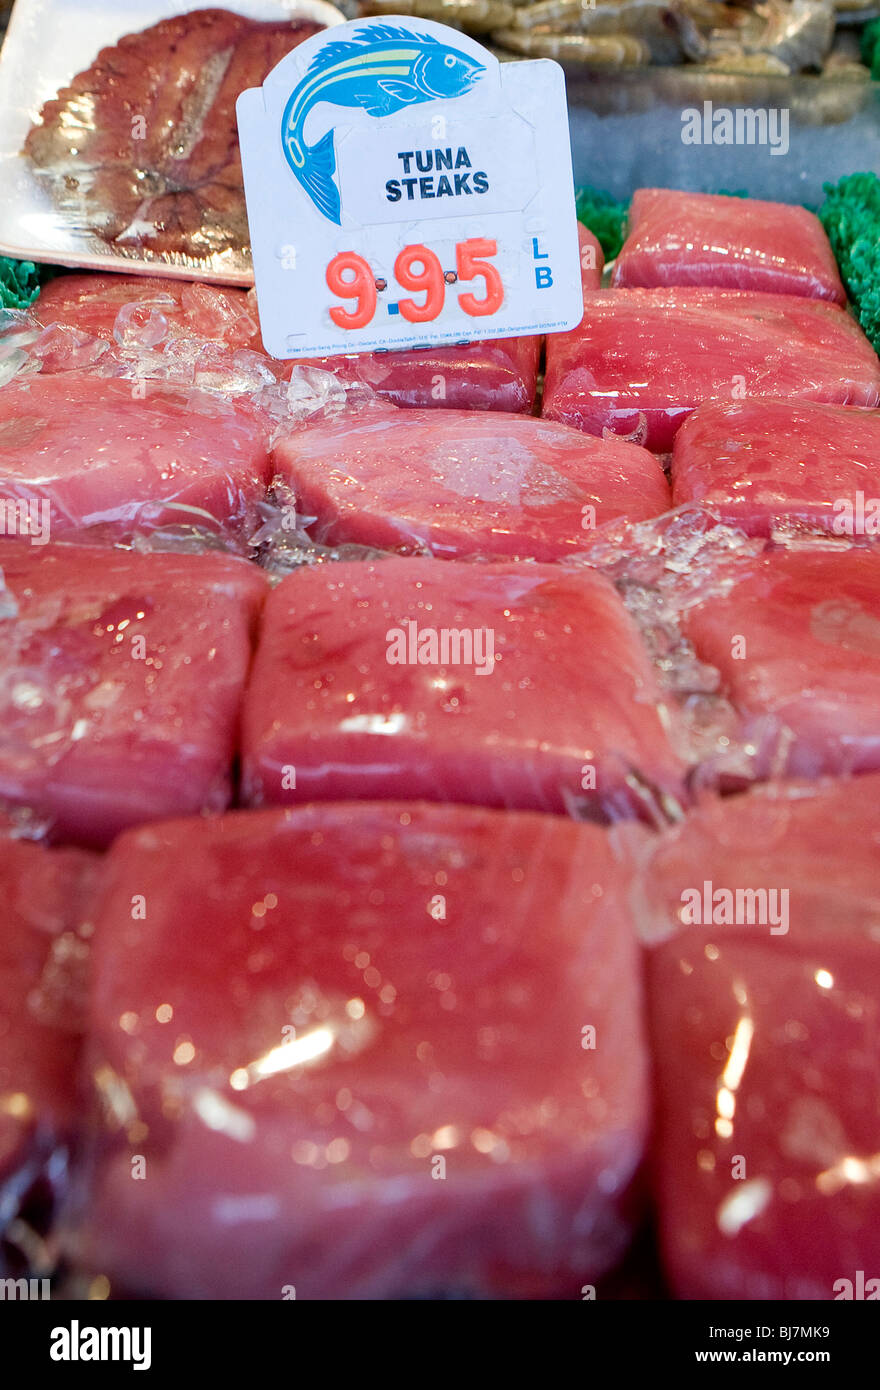 Tuna steaks on sale at a fish market.  - Stock Image